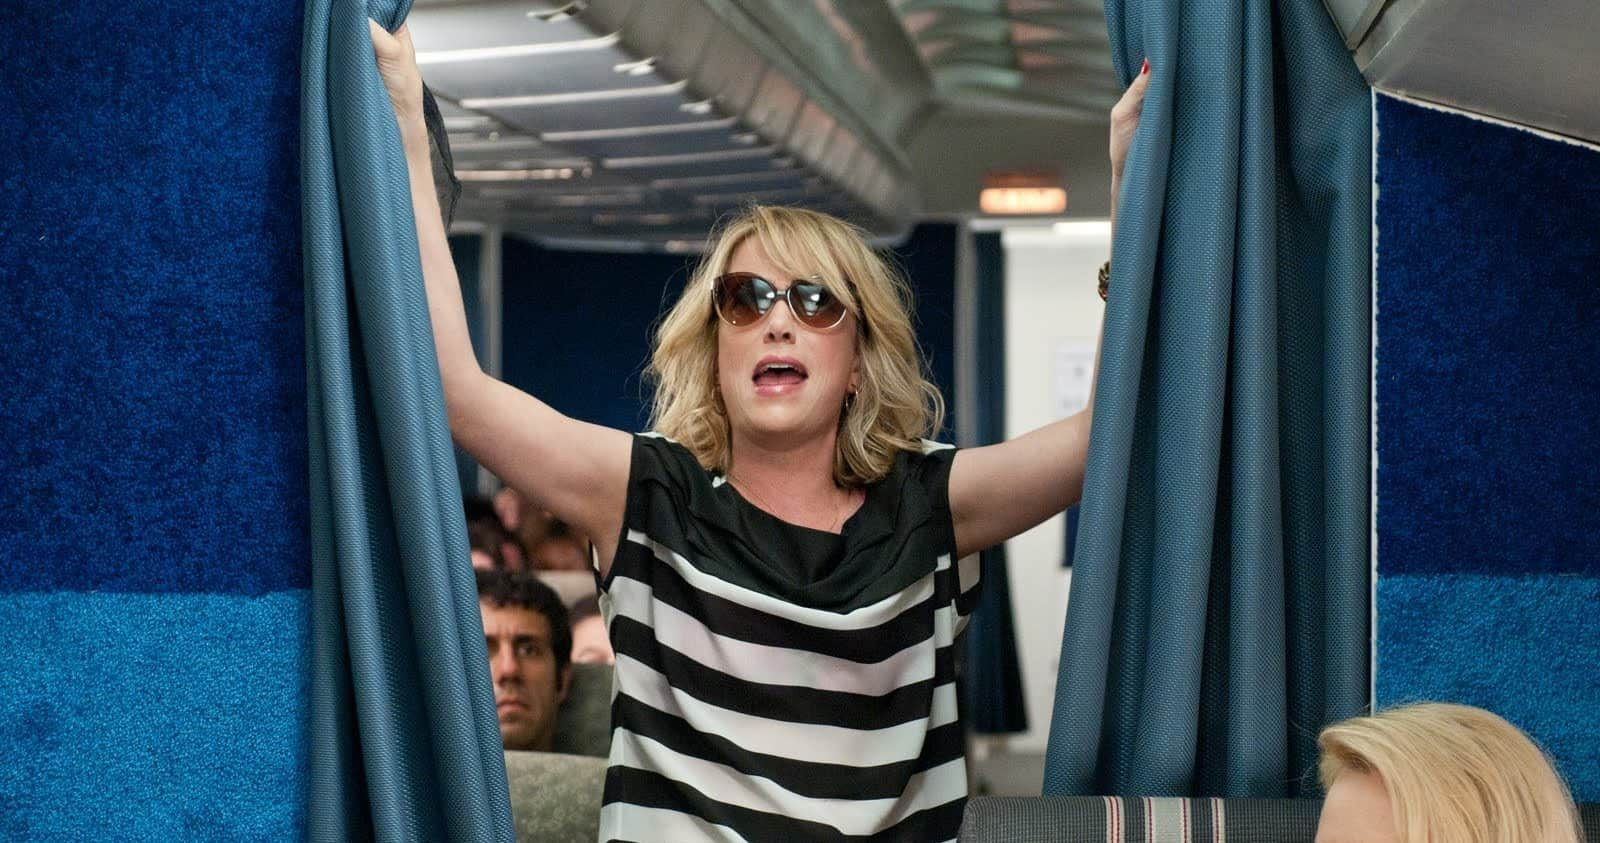 Kristen Wiig slayed us in Bridesmaids.